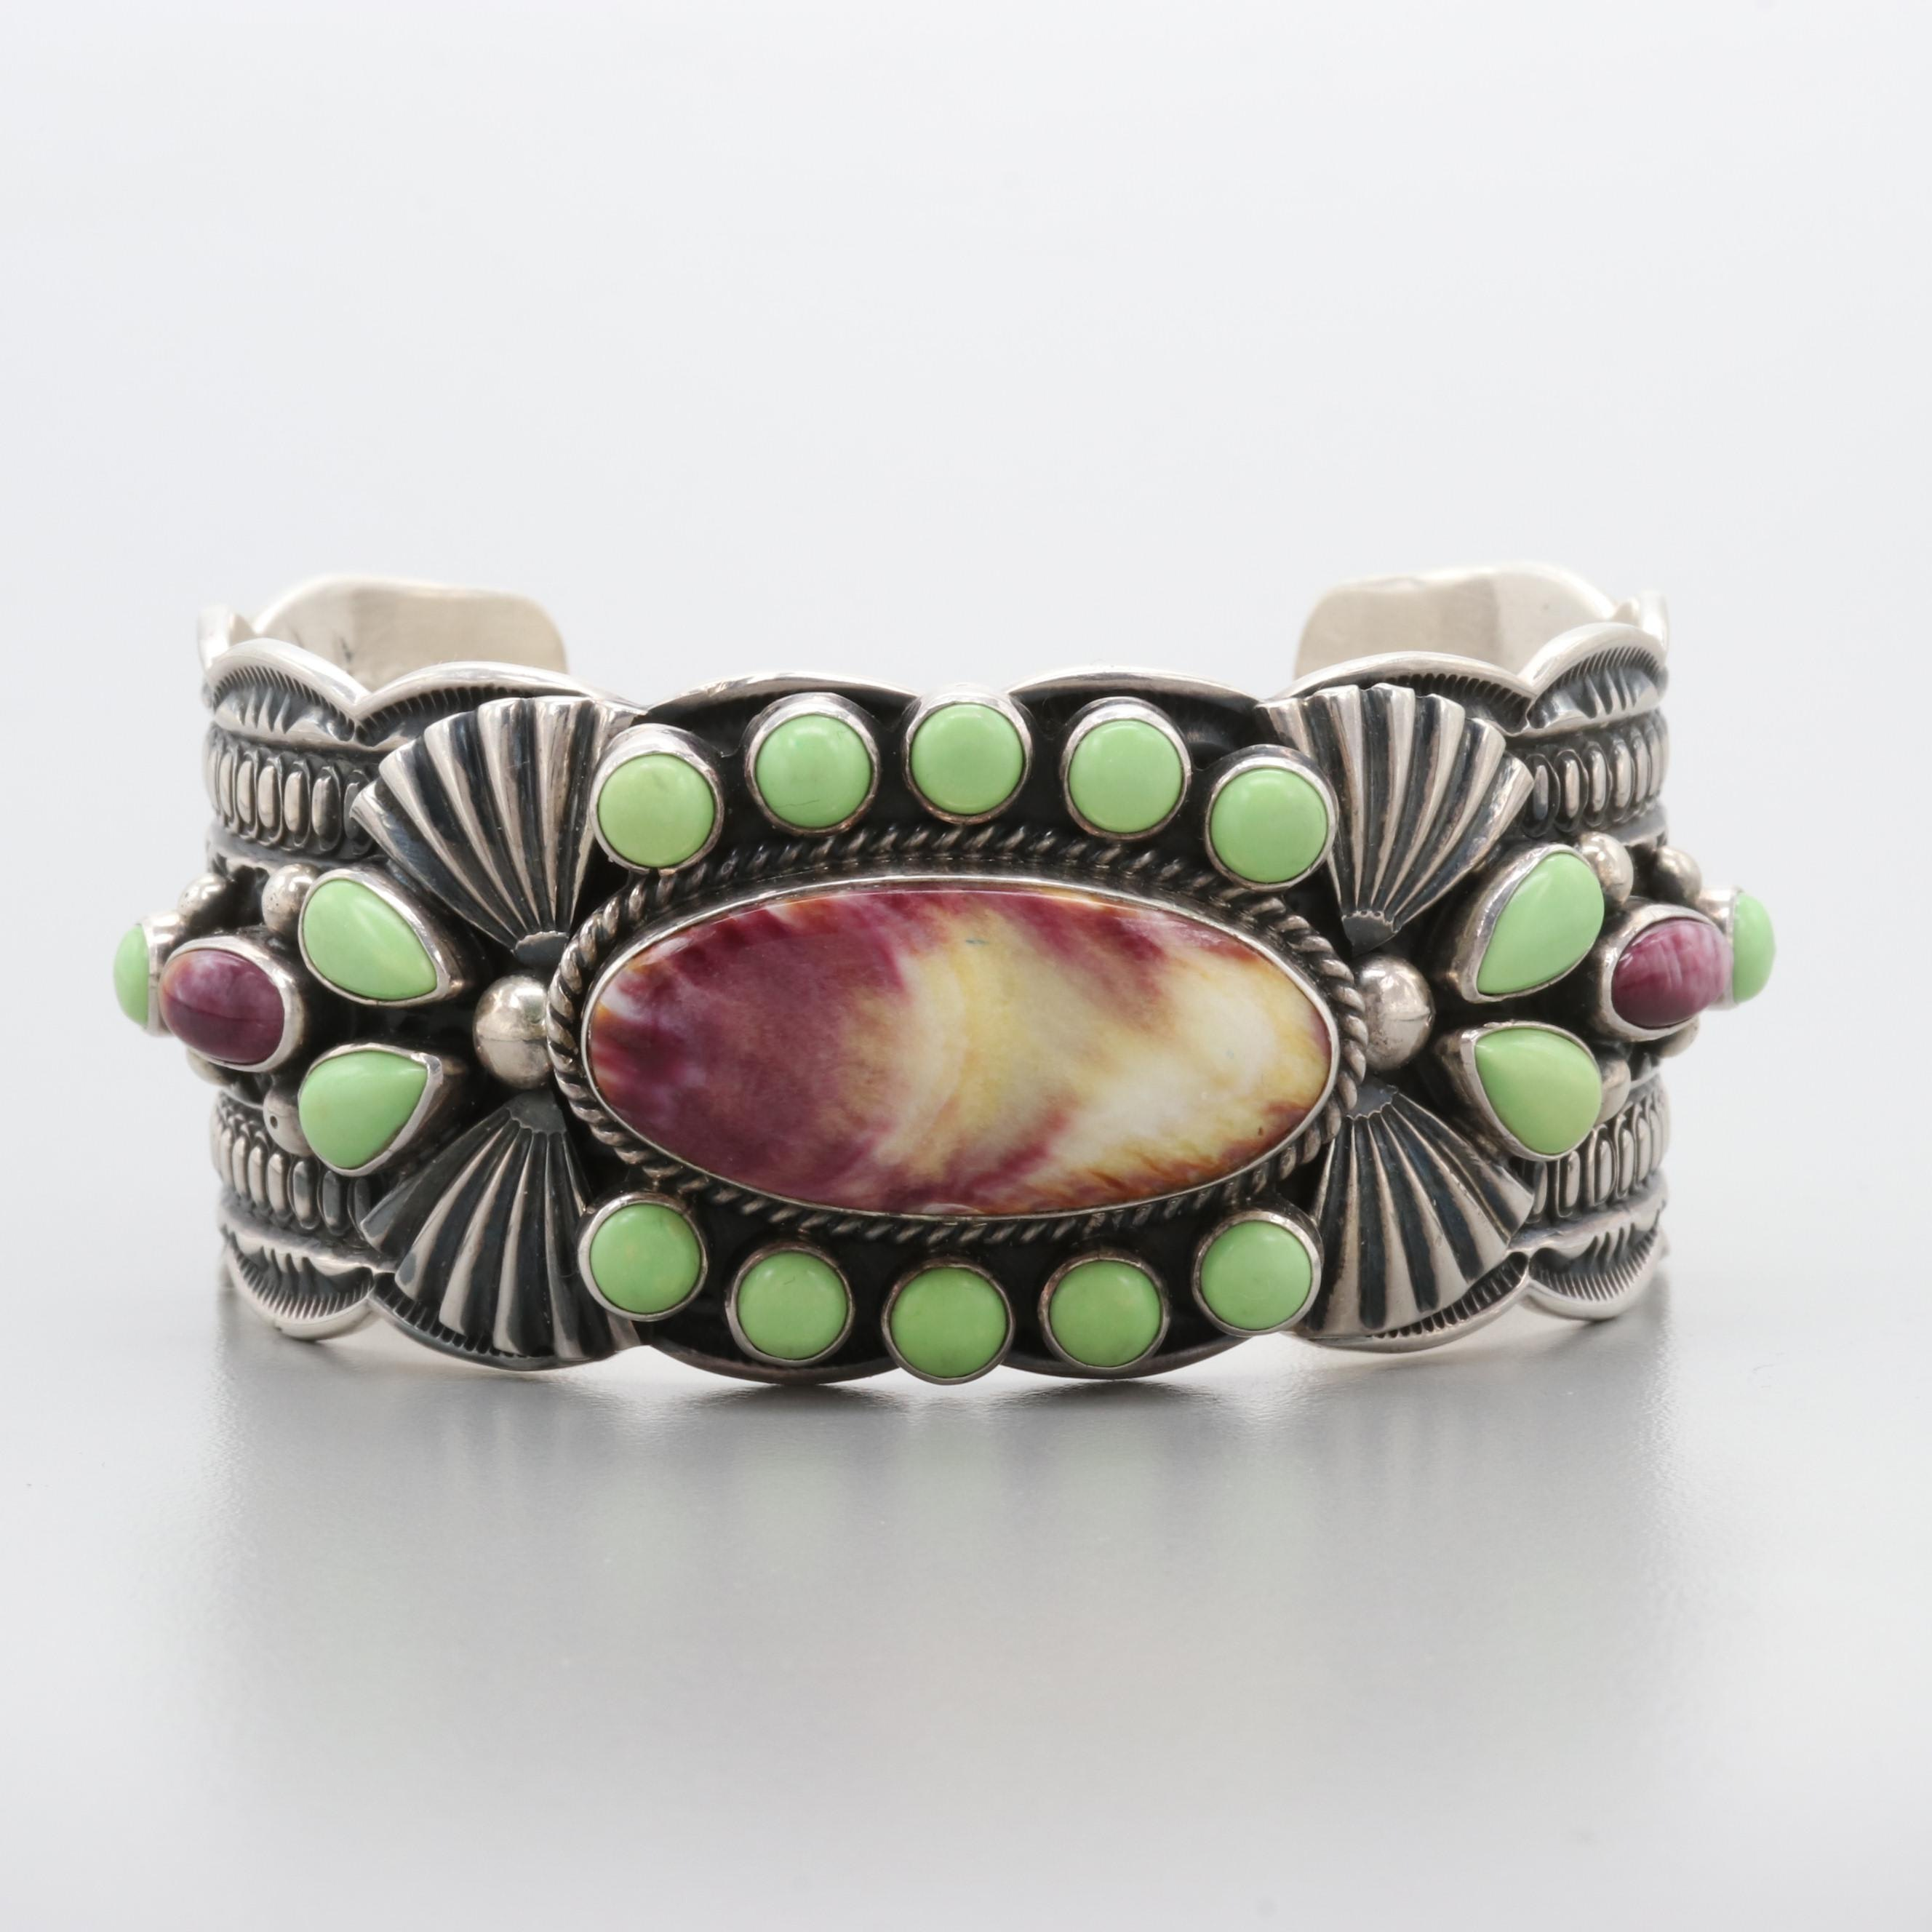 Delbert Gordon Navajo Diné Sterling Silver Spiny Oyster and Magnesite Cuff